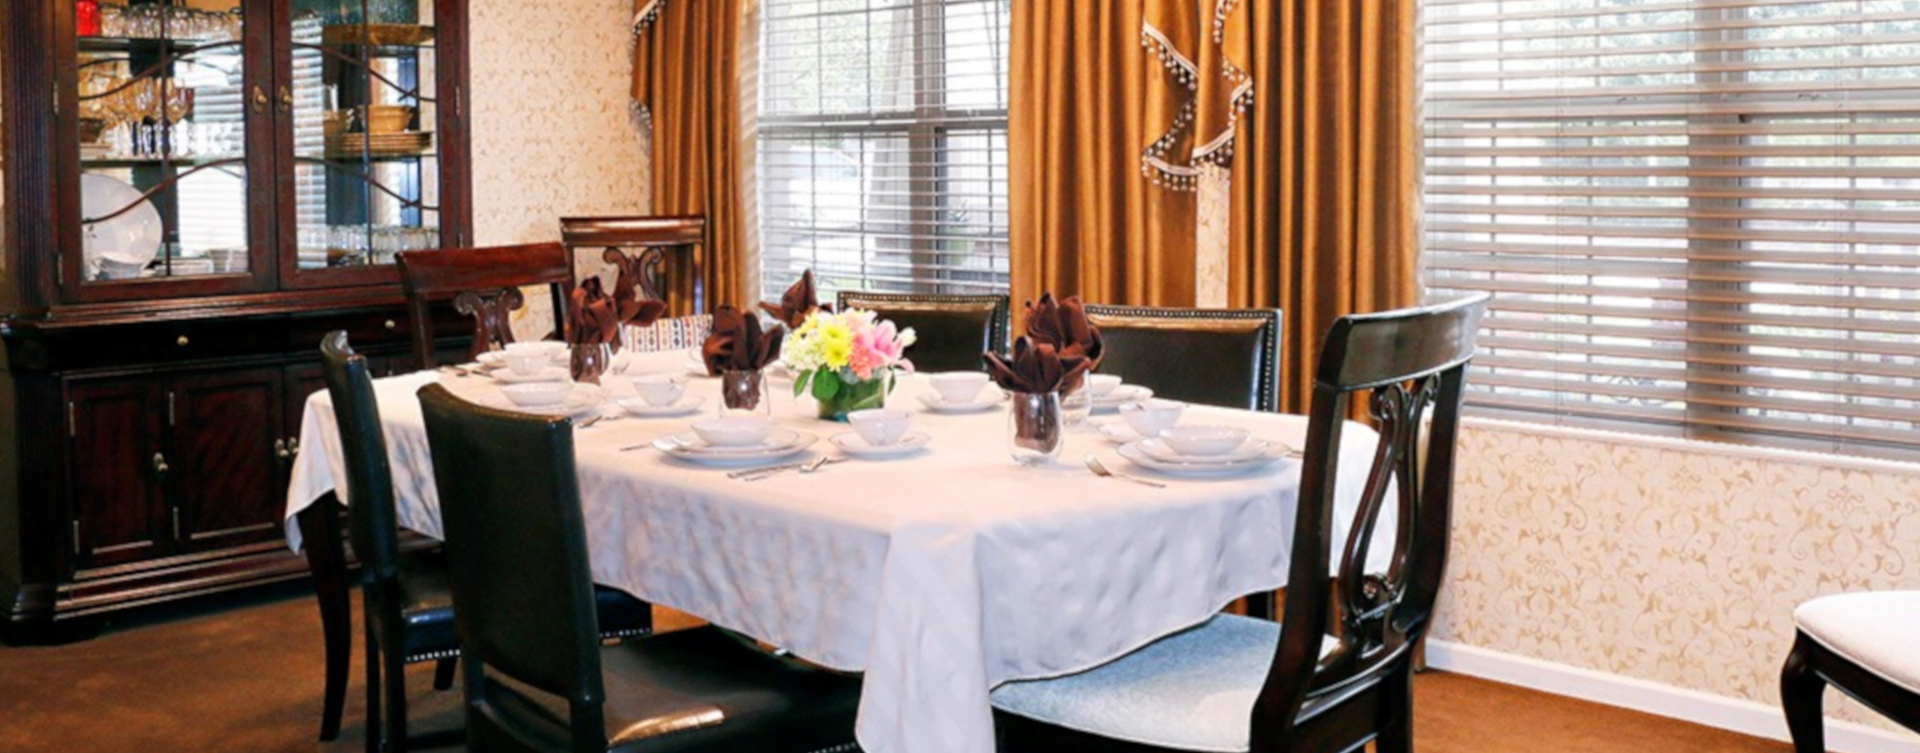 Have fun with themed and holiday meals in the private dining room at Bickford of West Des Moines